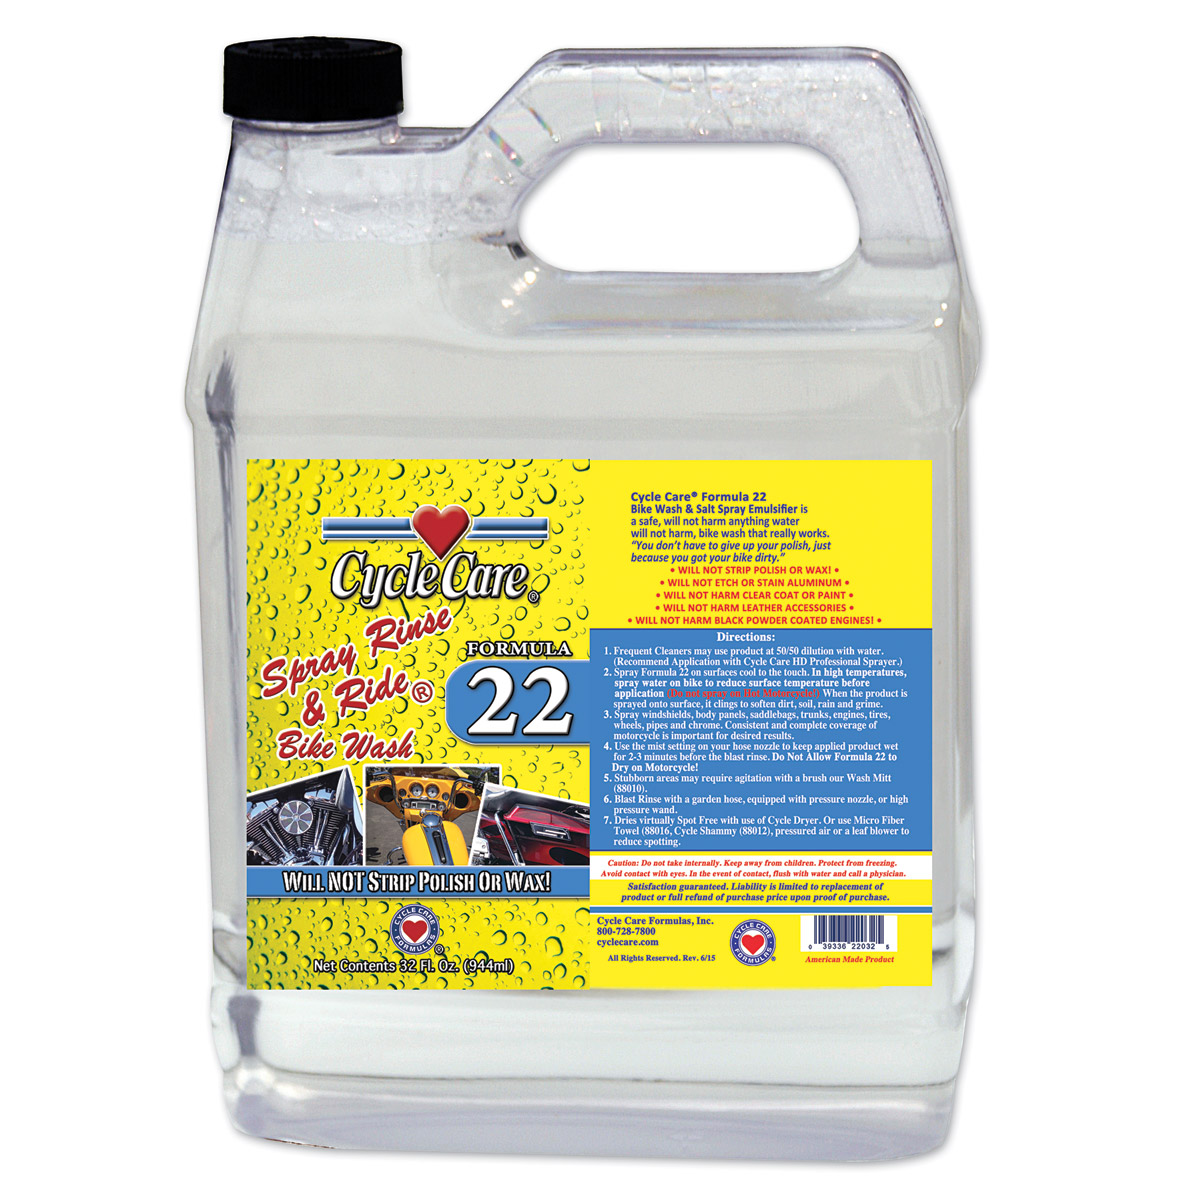 Cycle Care 1 Gallon Formula 22 Spray Rinse and Ride Bike Wash